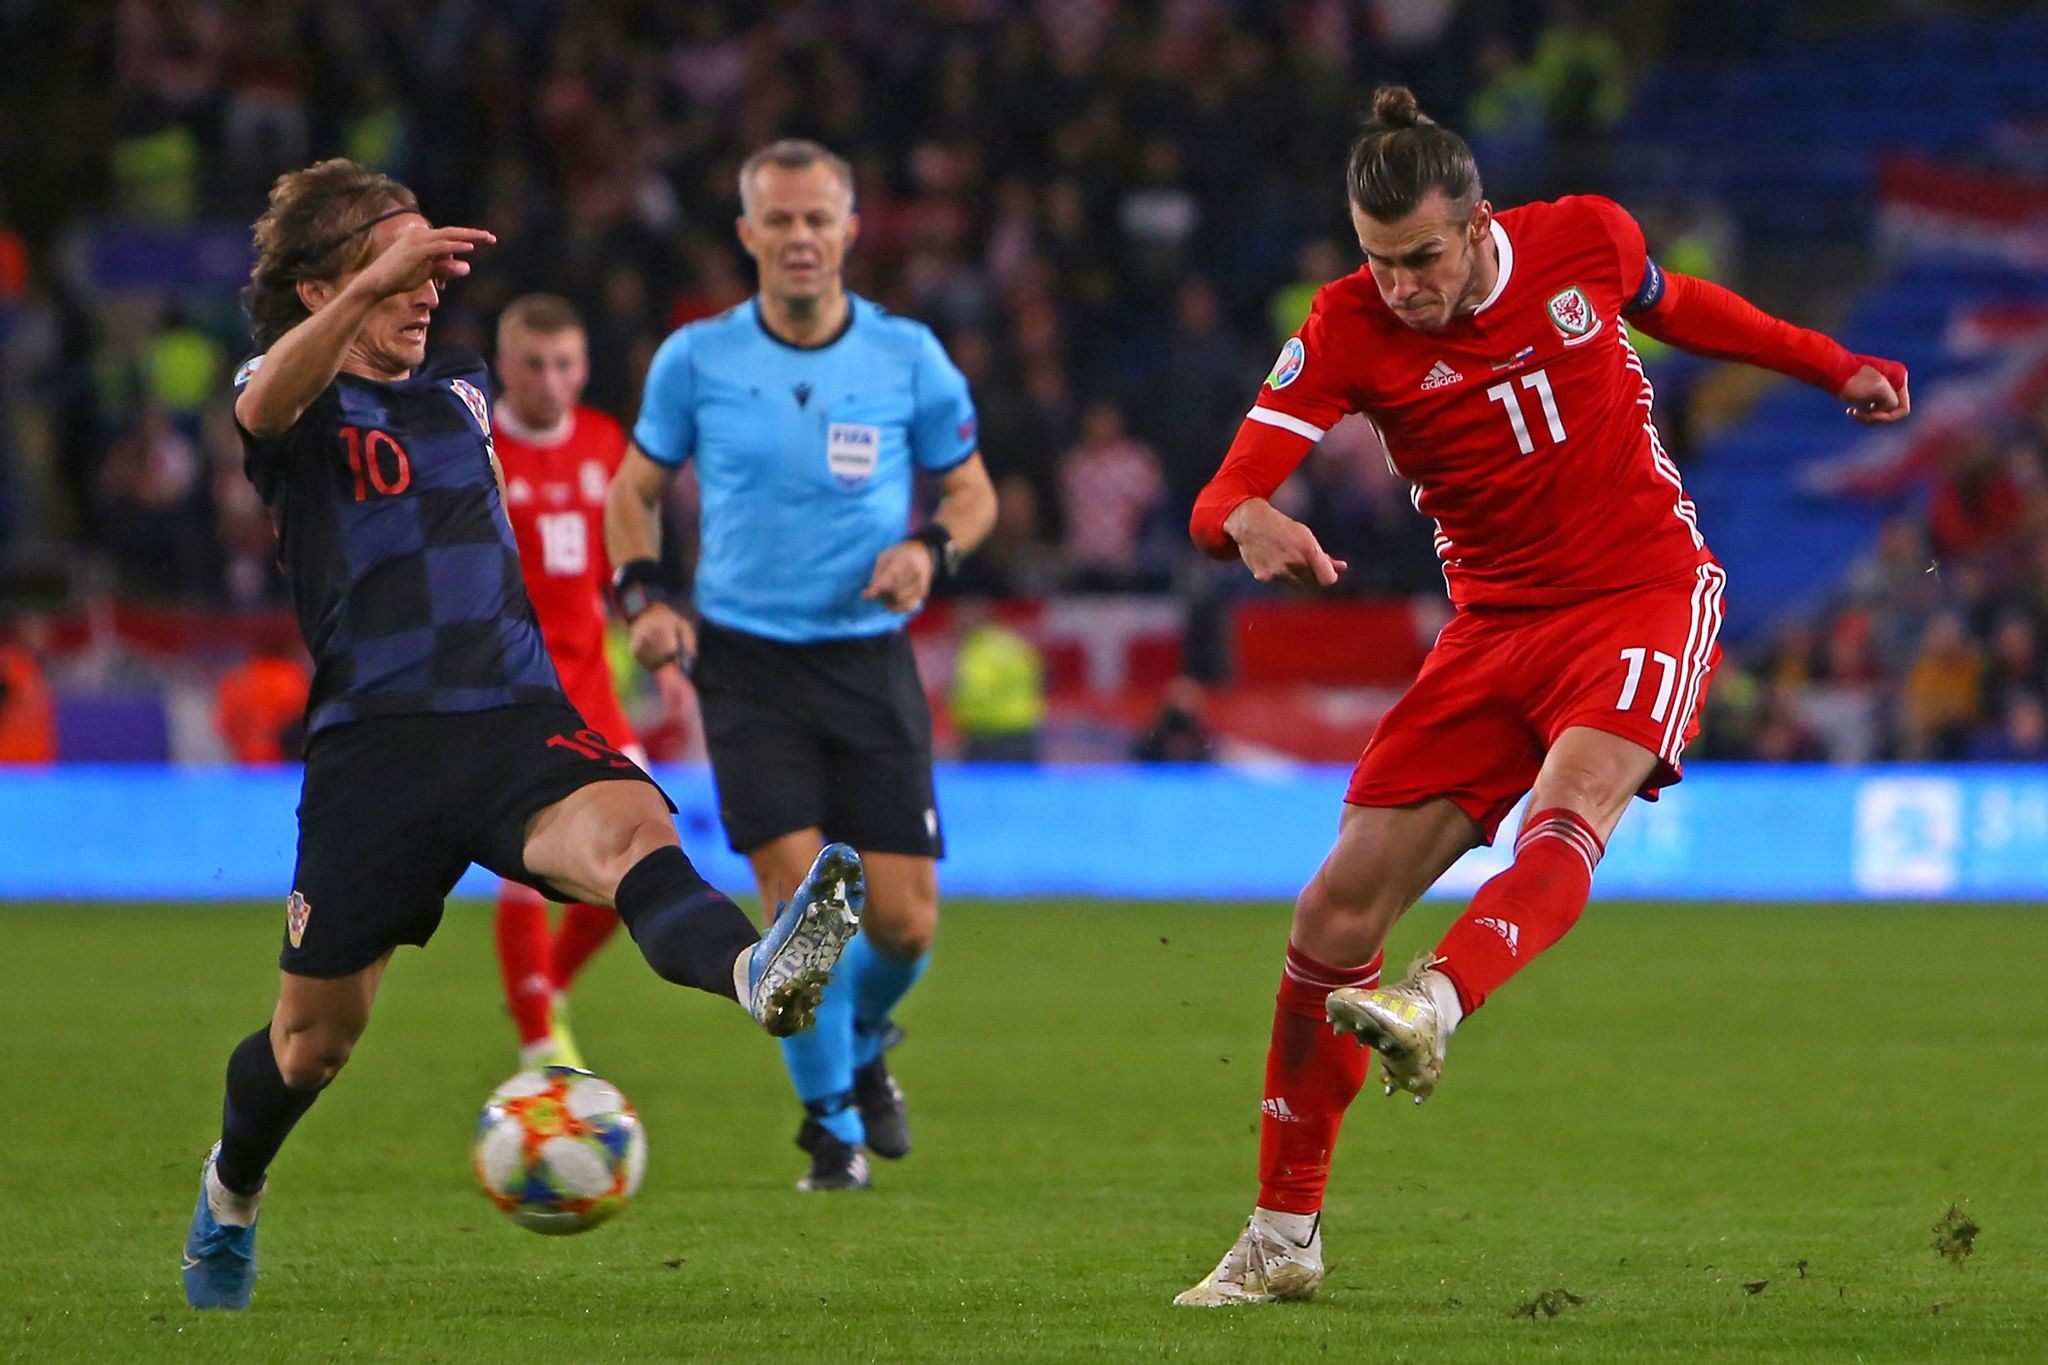 Wales striker Gareth <HIT>Bale</HIT> (R) has an unsuccessful shot under pressure from Croatias midfielder Luka <HIT>Modric</HIT> (L) during the Euro 2020 football qualification match between Wales and Croatia at Cardiff City Stadium, Cardiff on October 13, 2019. (Photo by GEOFF CADDICK / AFP)